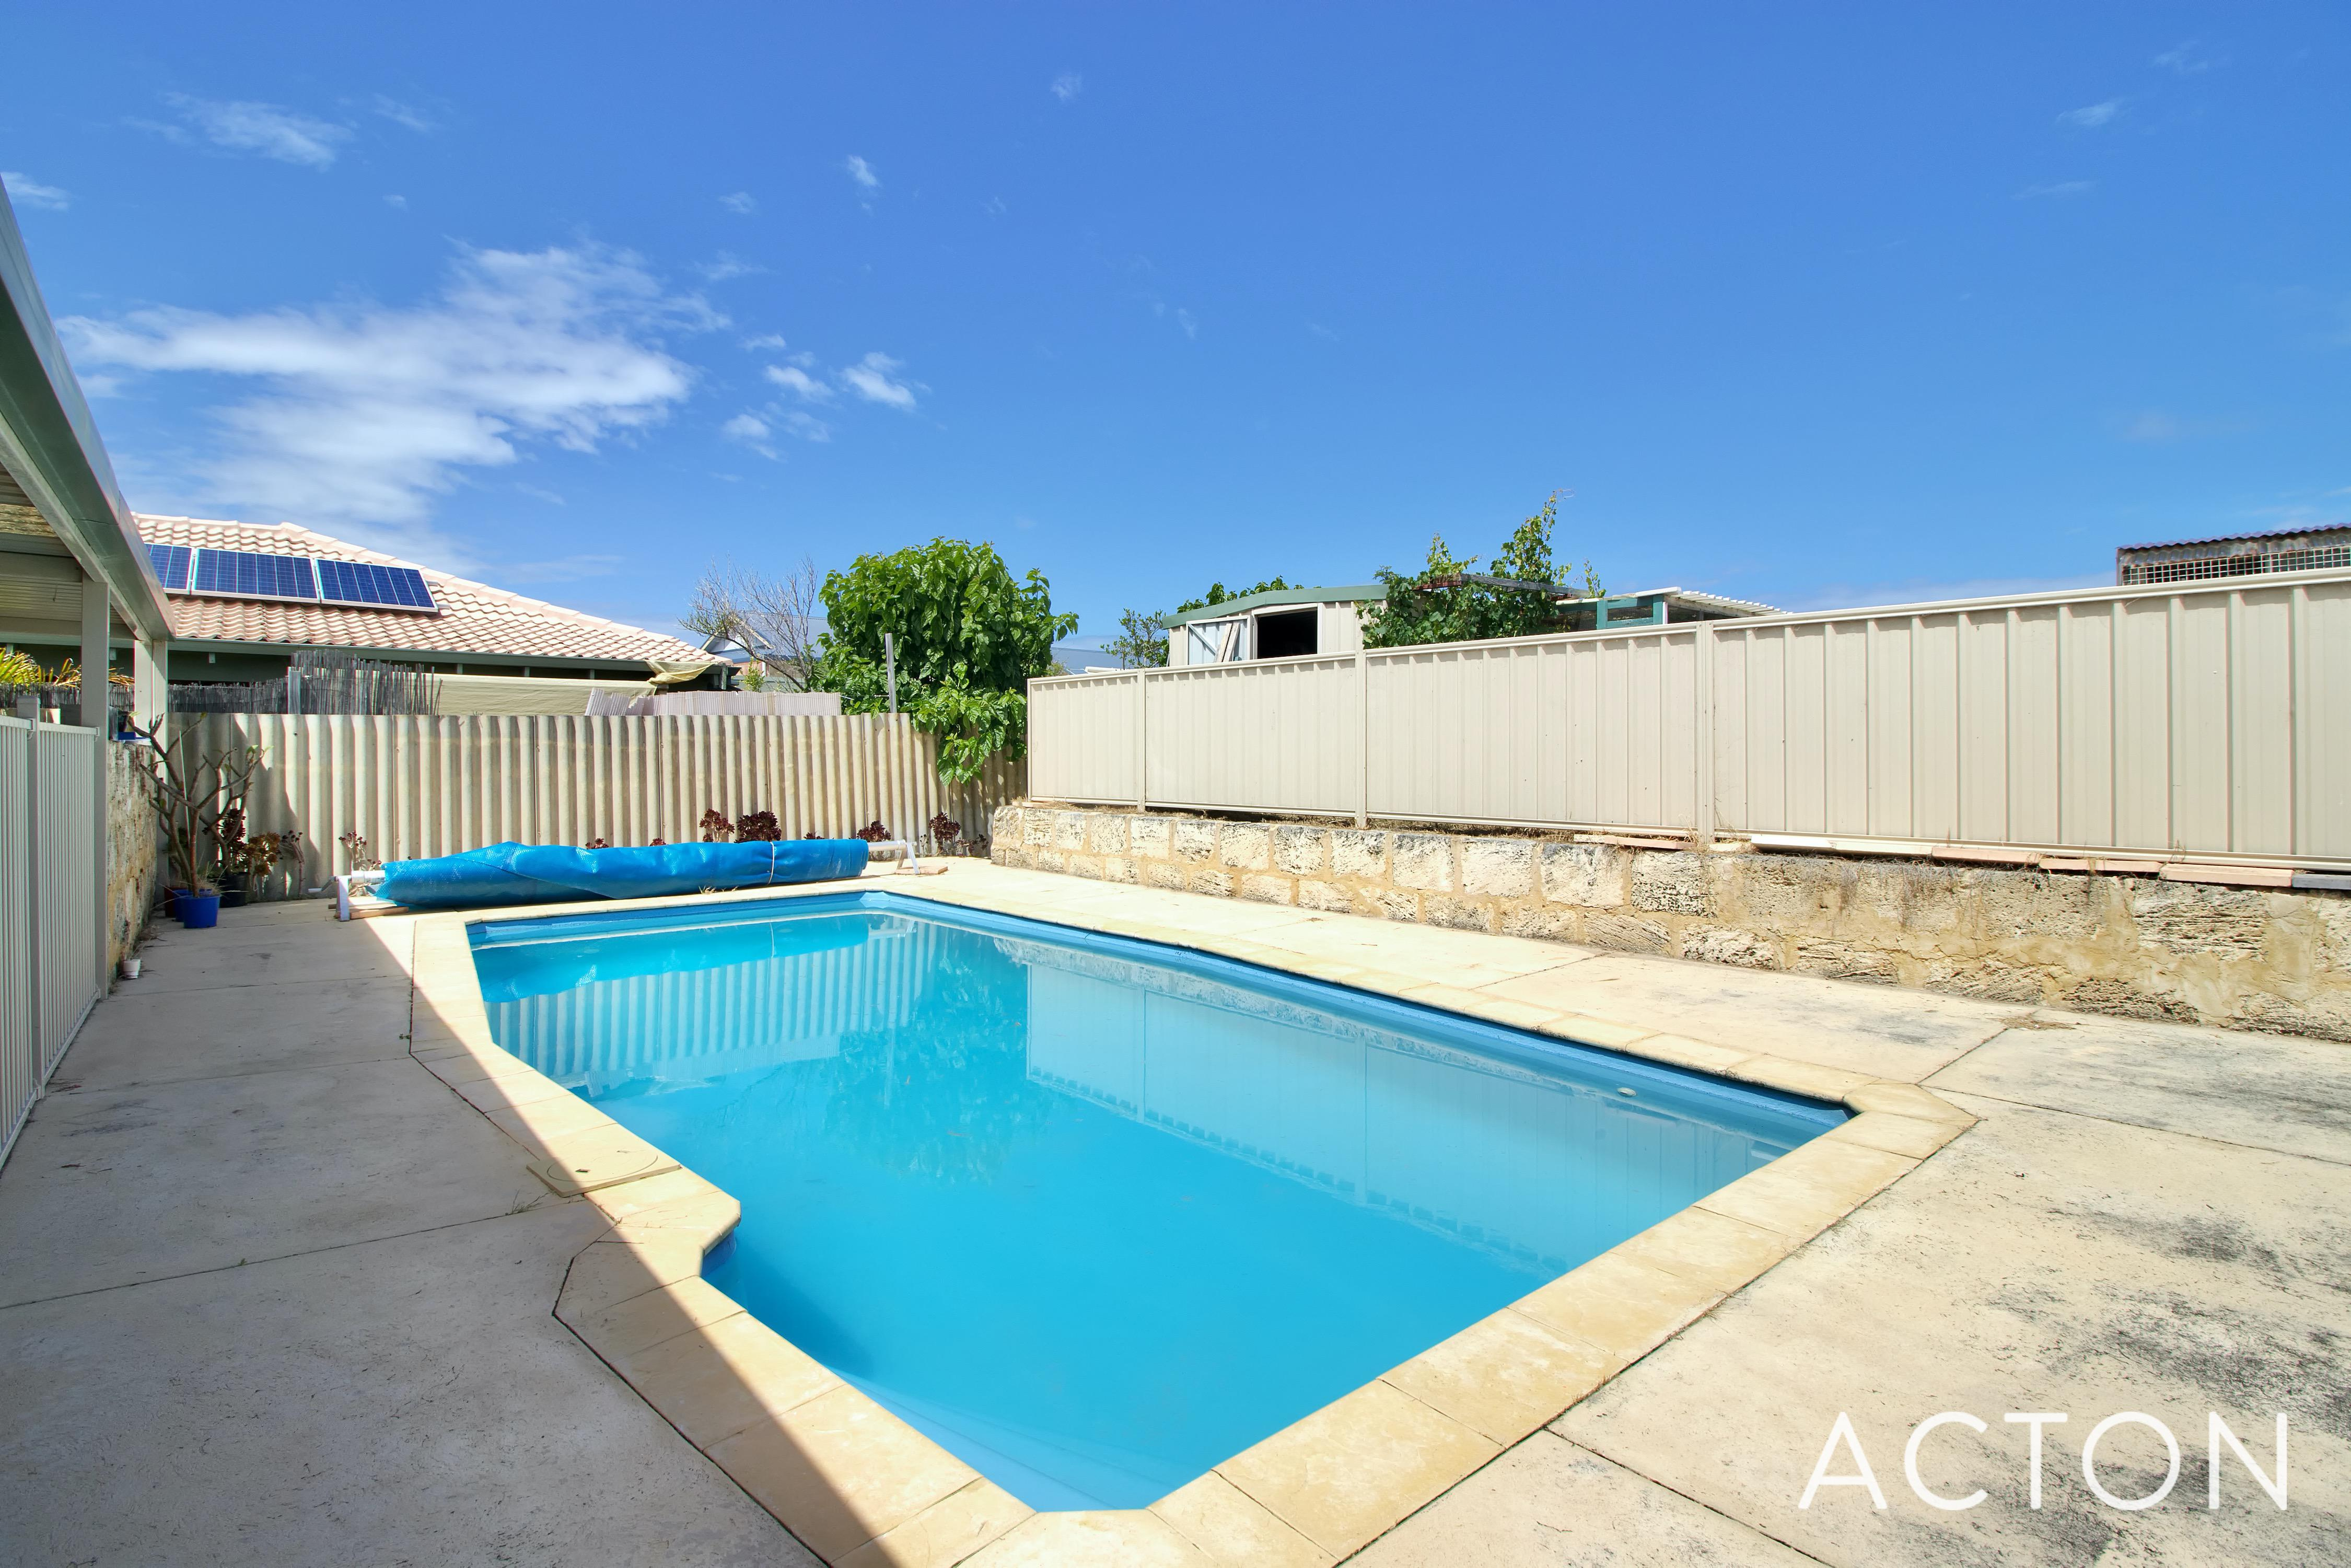 18 Monkton Way Warnbro - House For Sale - 22660393 - ACTON Rockingham